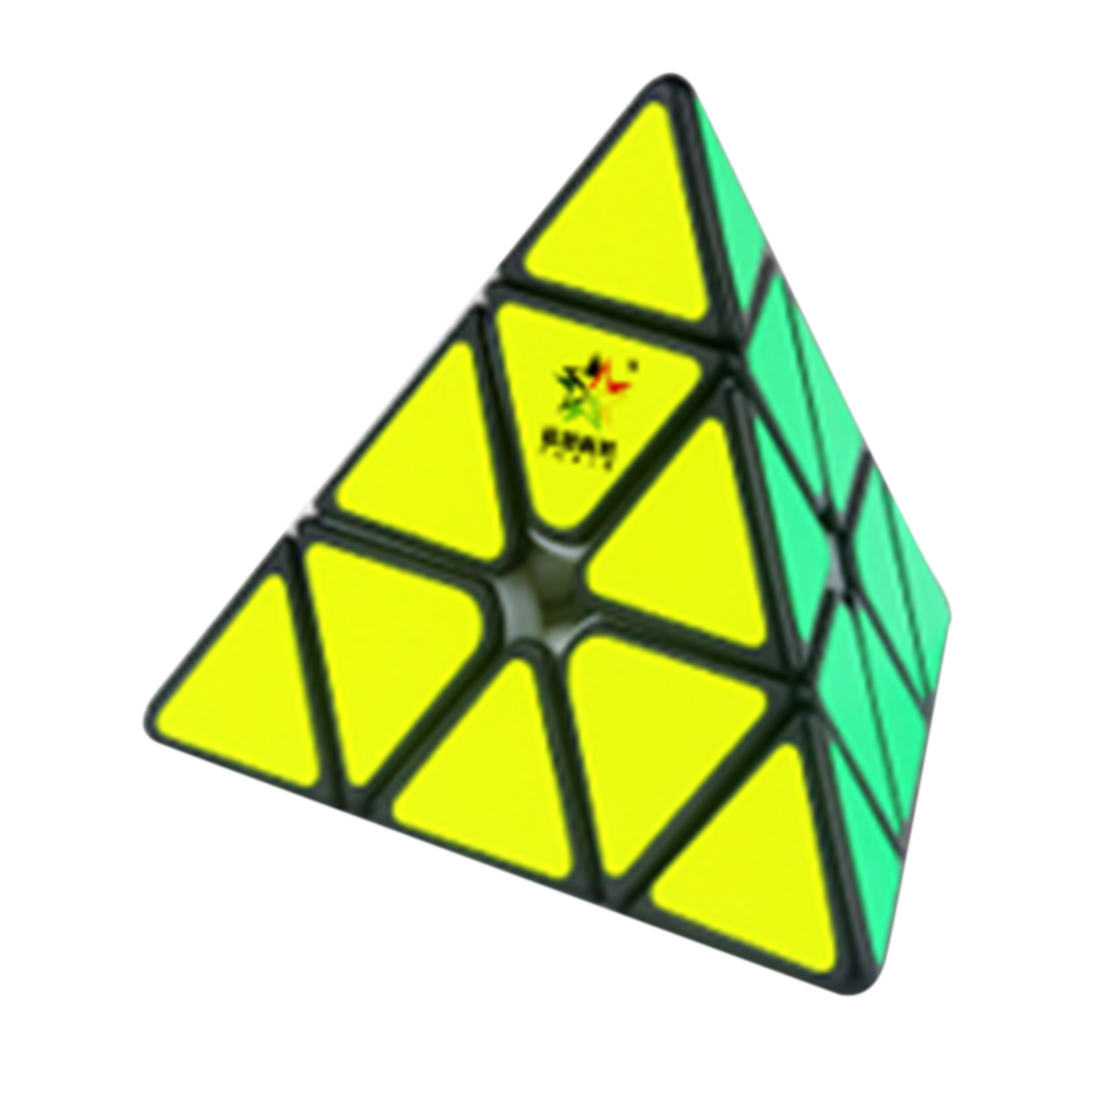 YuXin Huanglong Magnetic Pyramid Shape Magic Cube Puzzle Toy for Brain Training - Colorful Bright Red